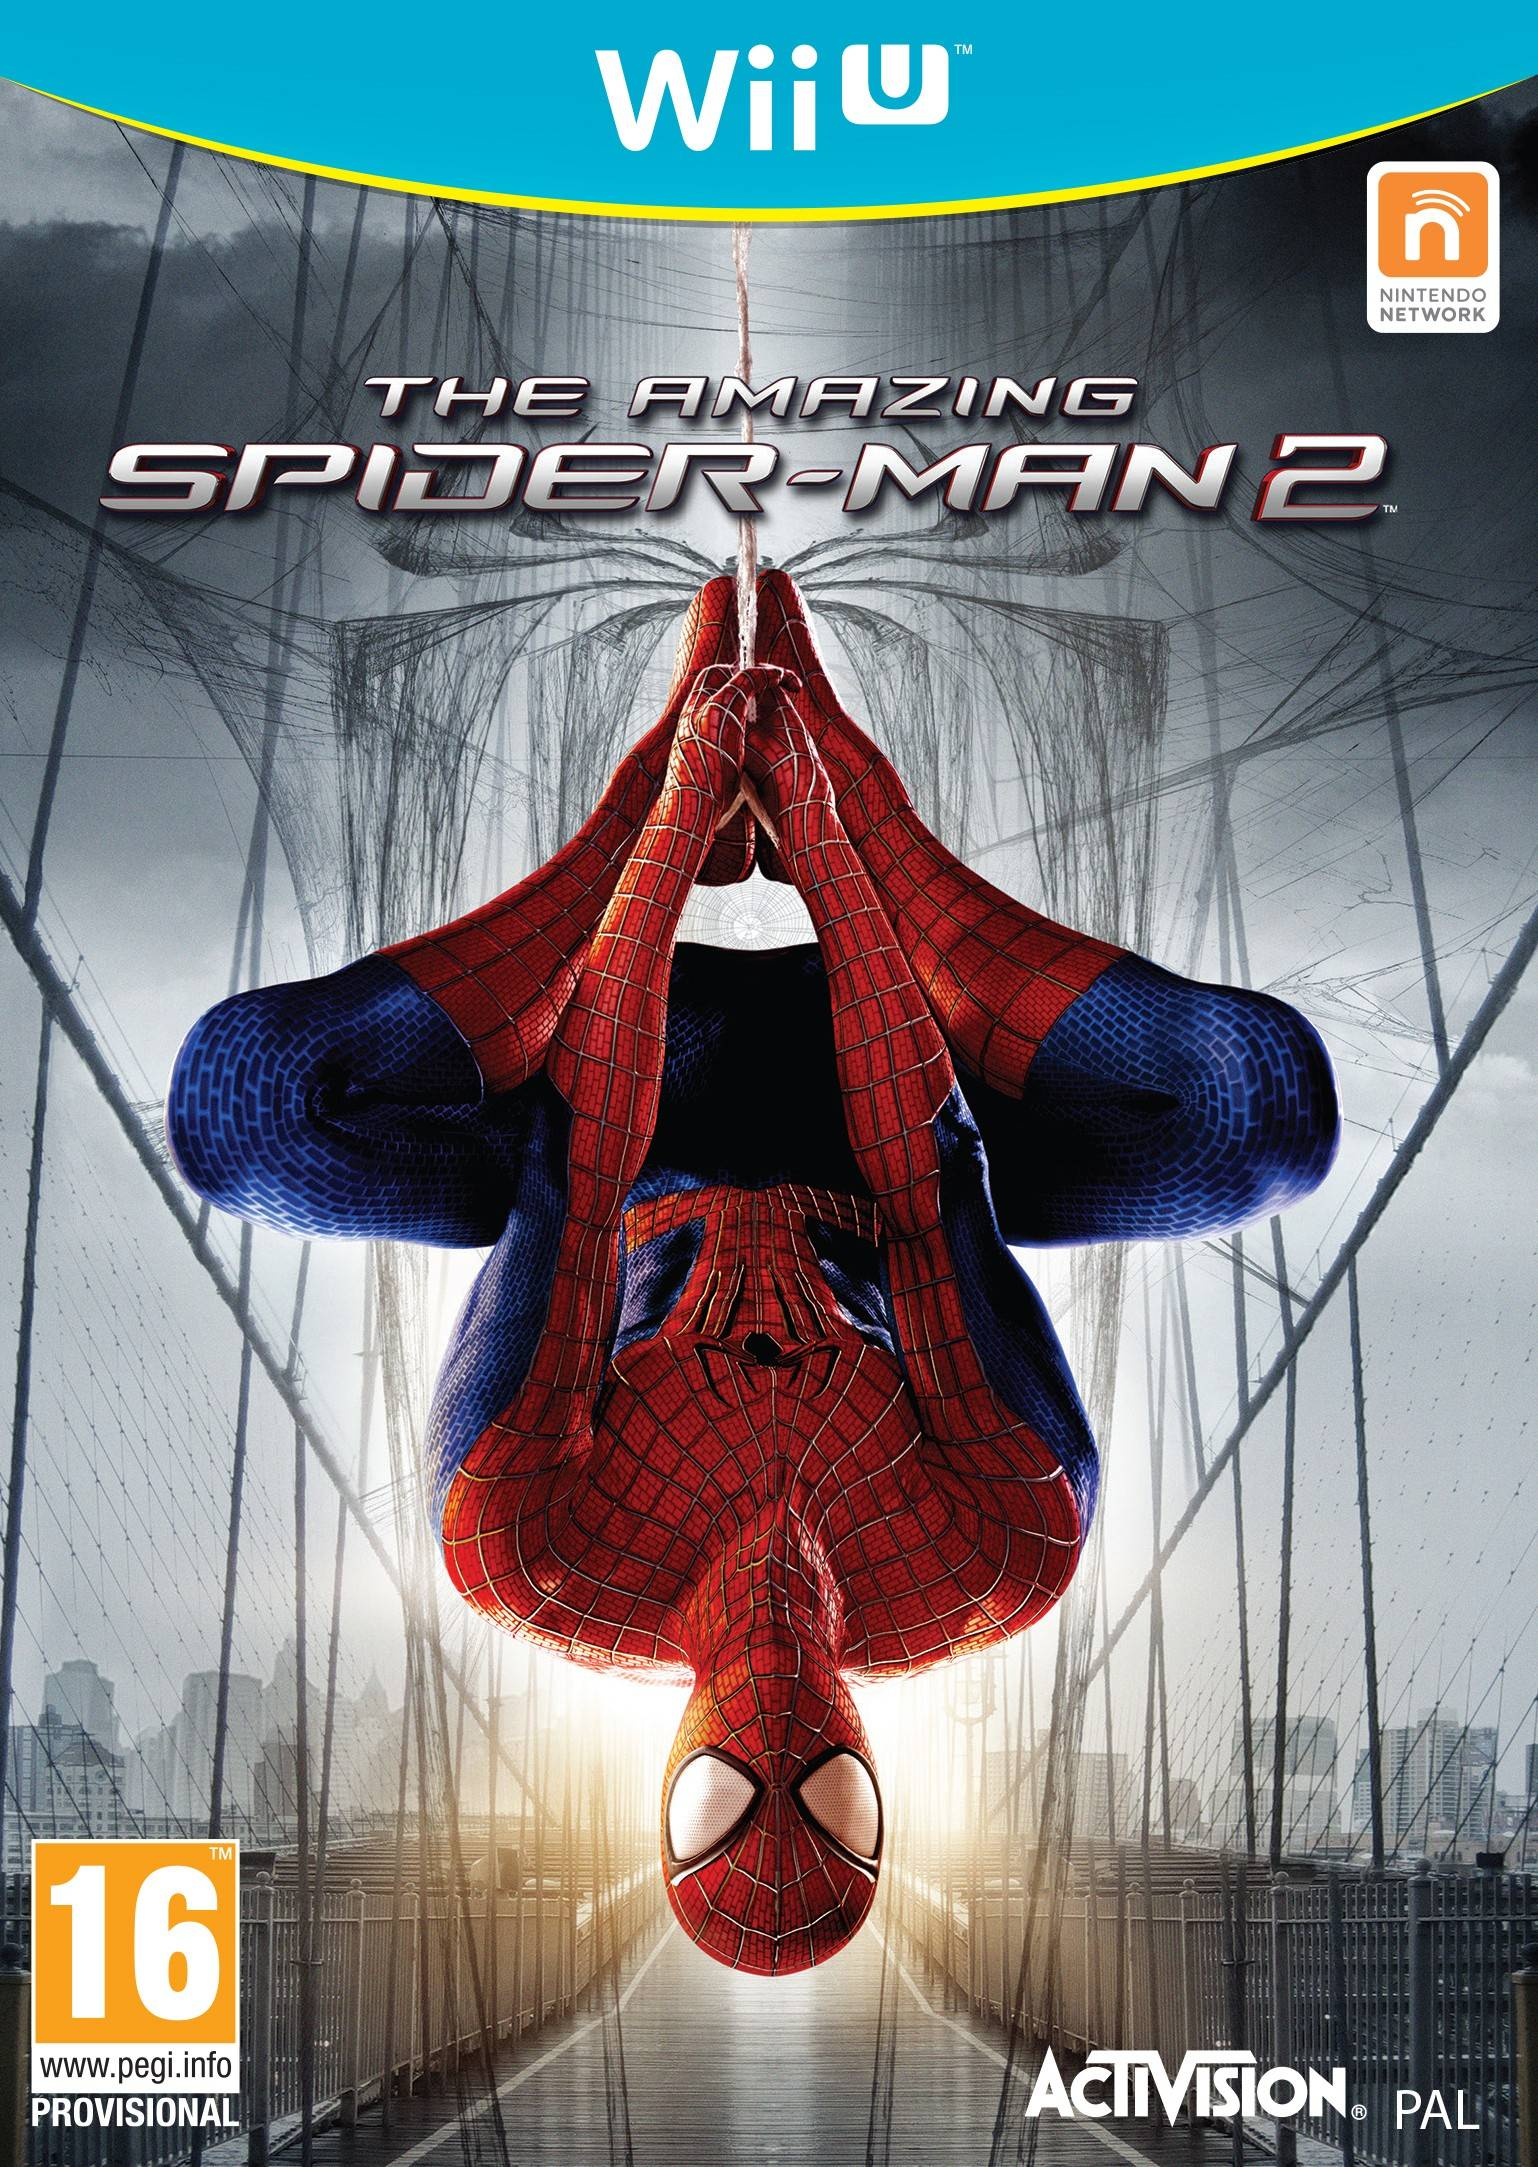 Activision The Amazing Spider-Man 2 (Wii U)